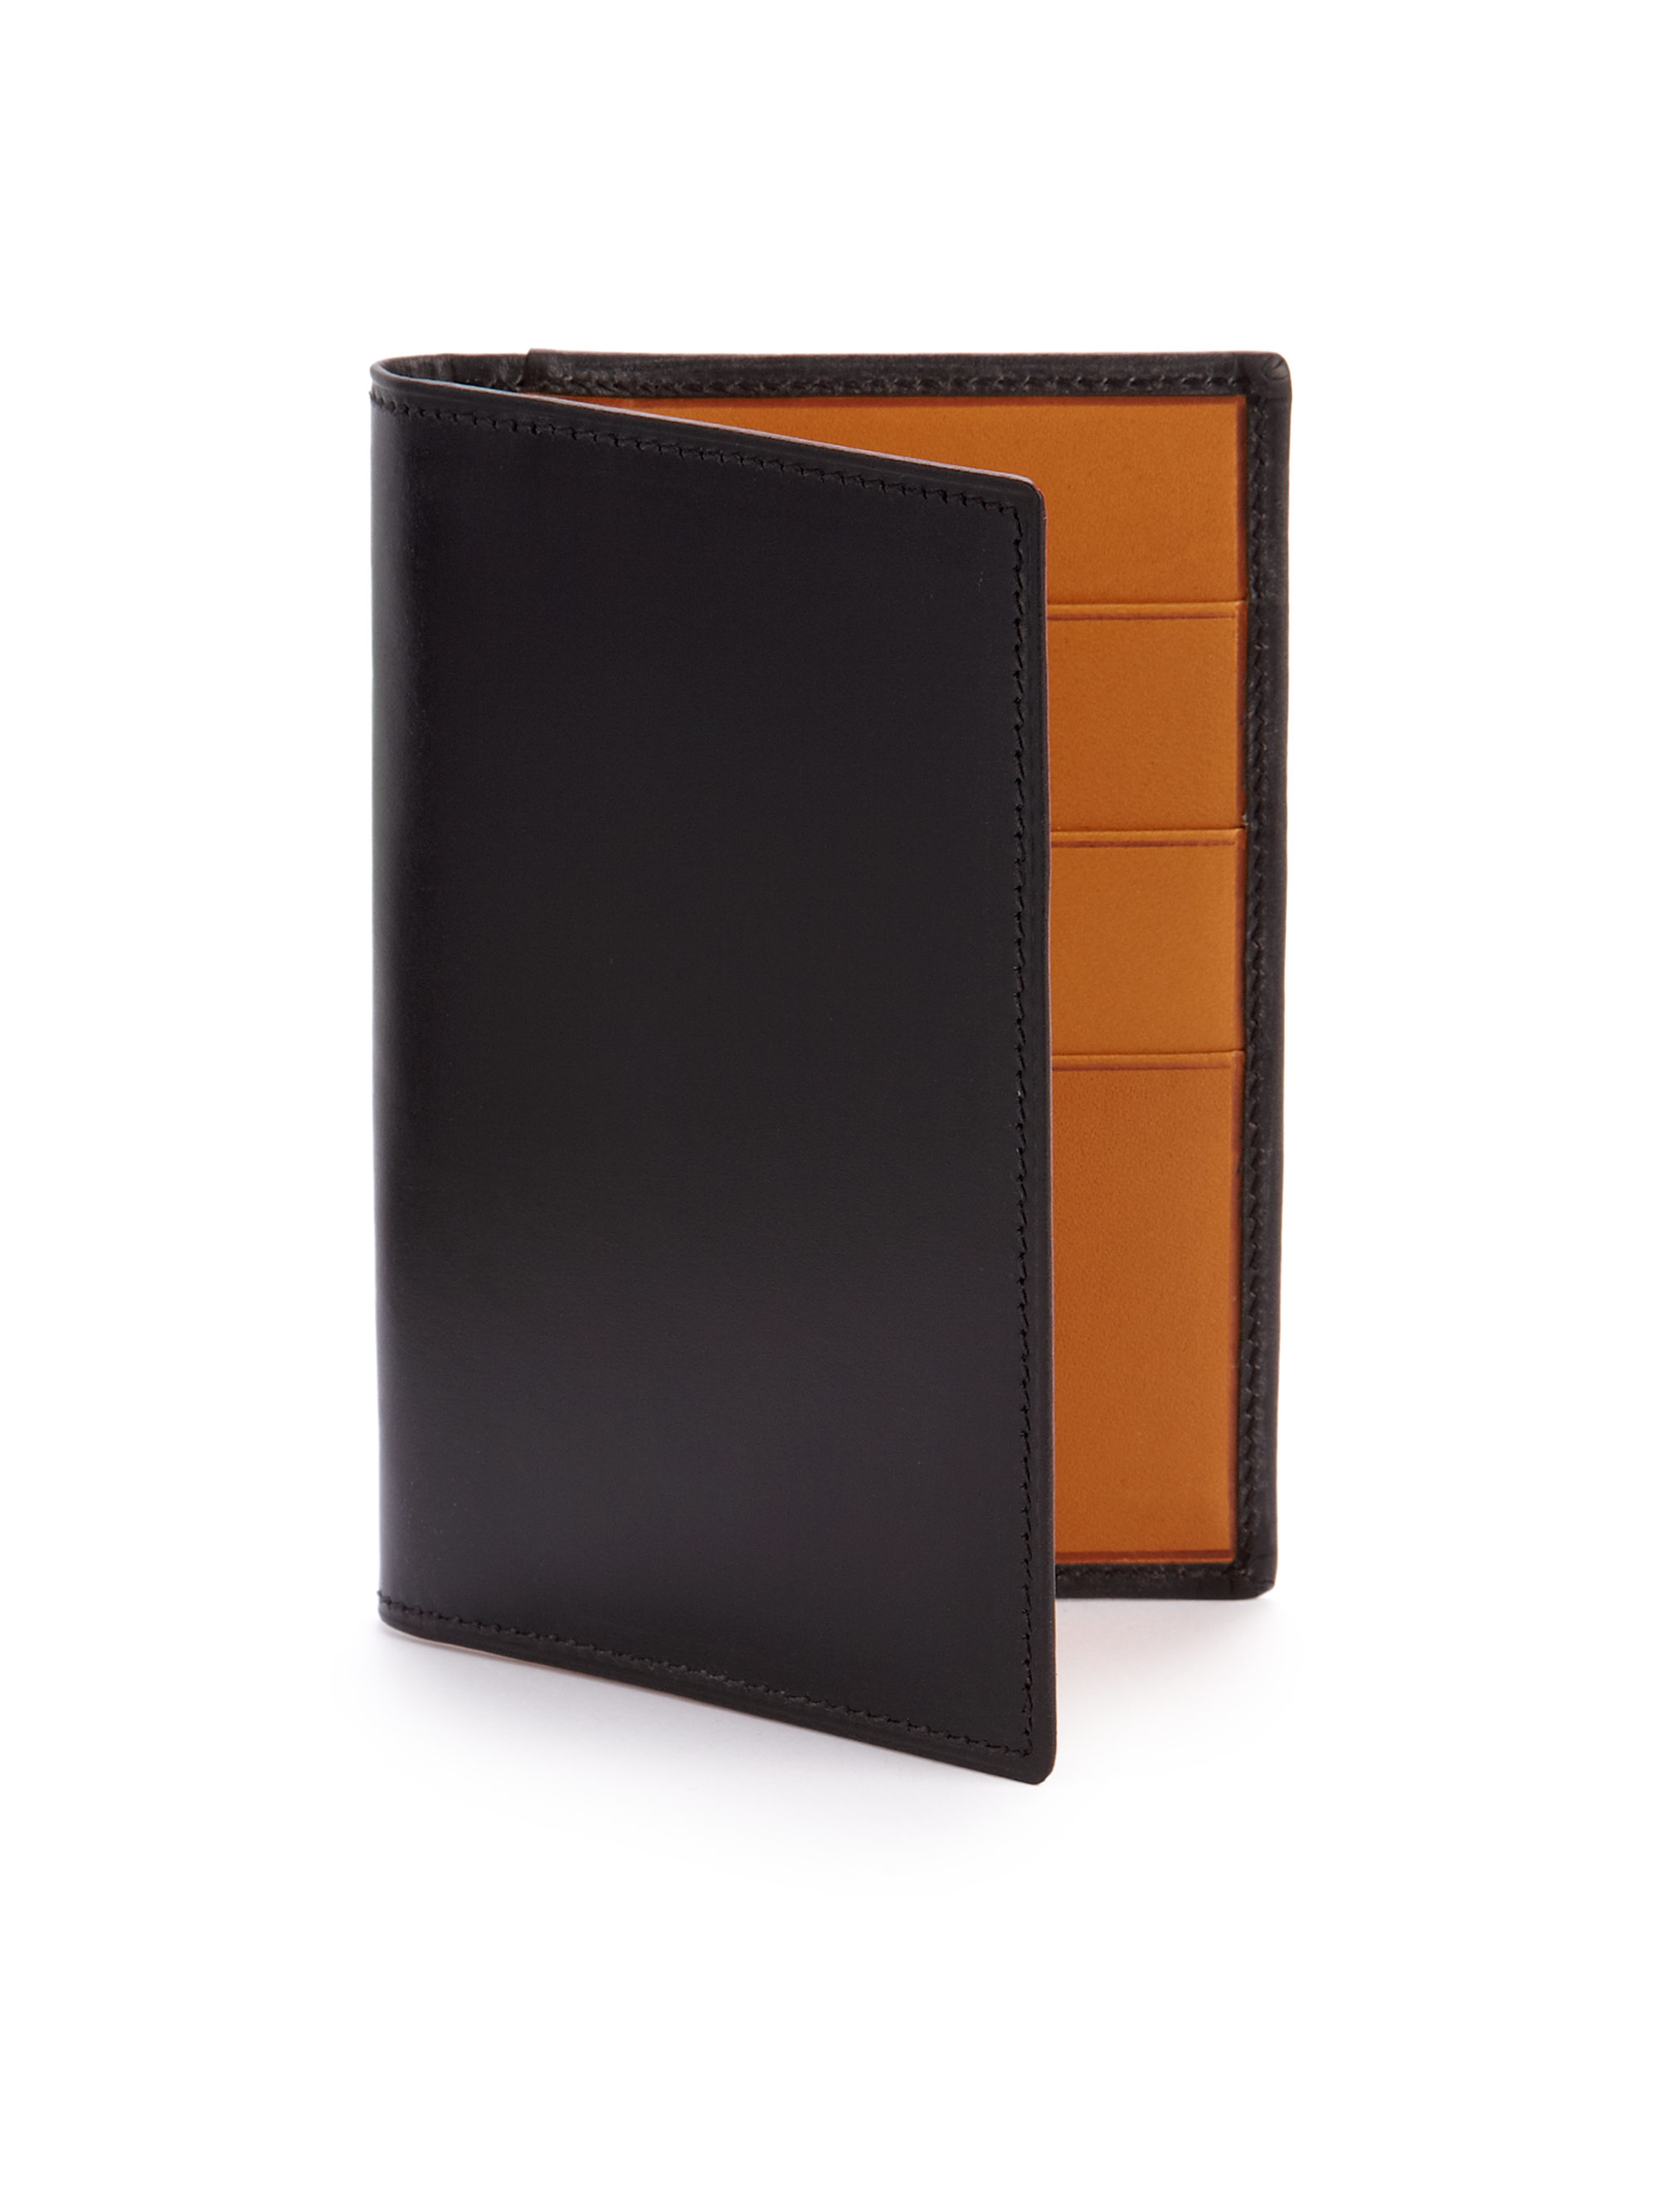 Leather Business Card Cases Choice Image - Business Card Template